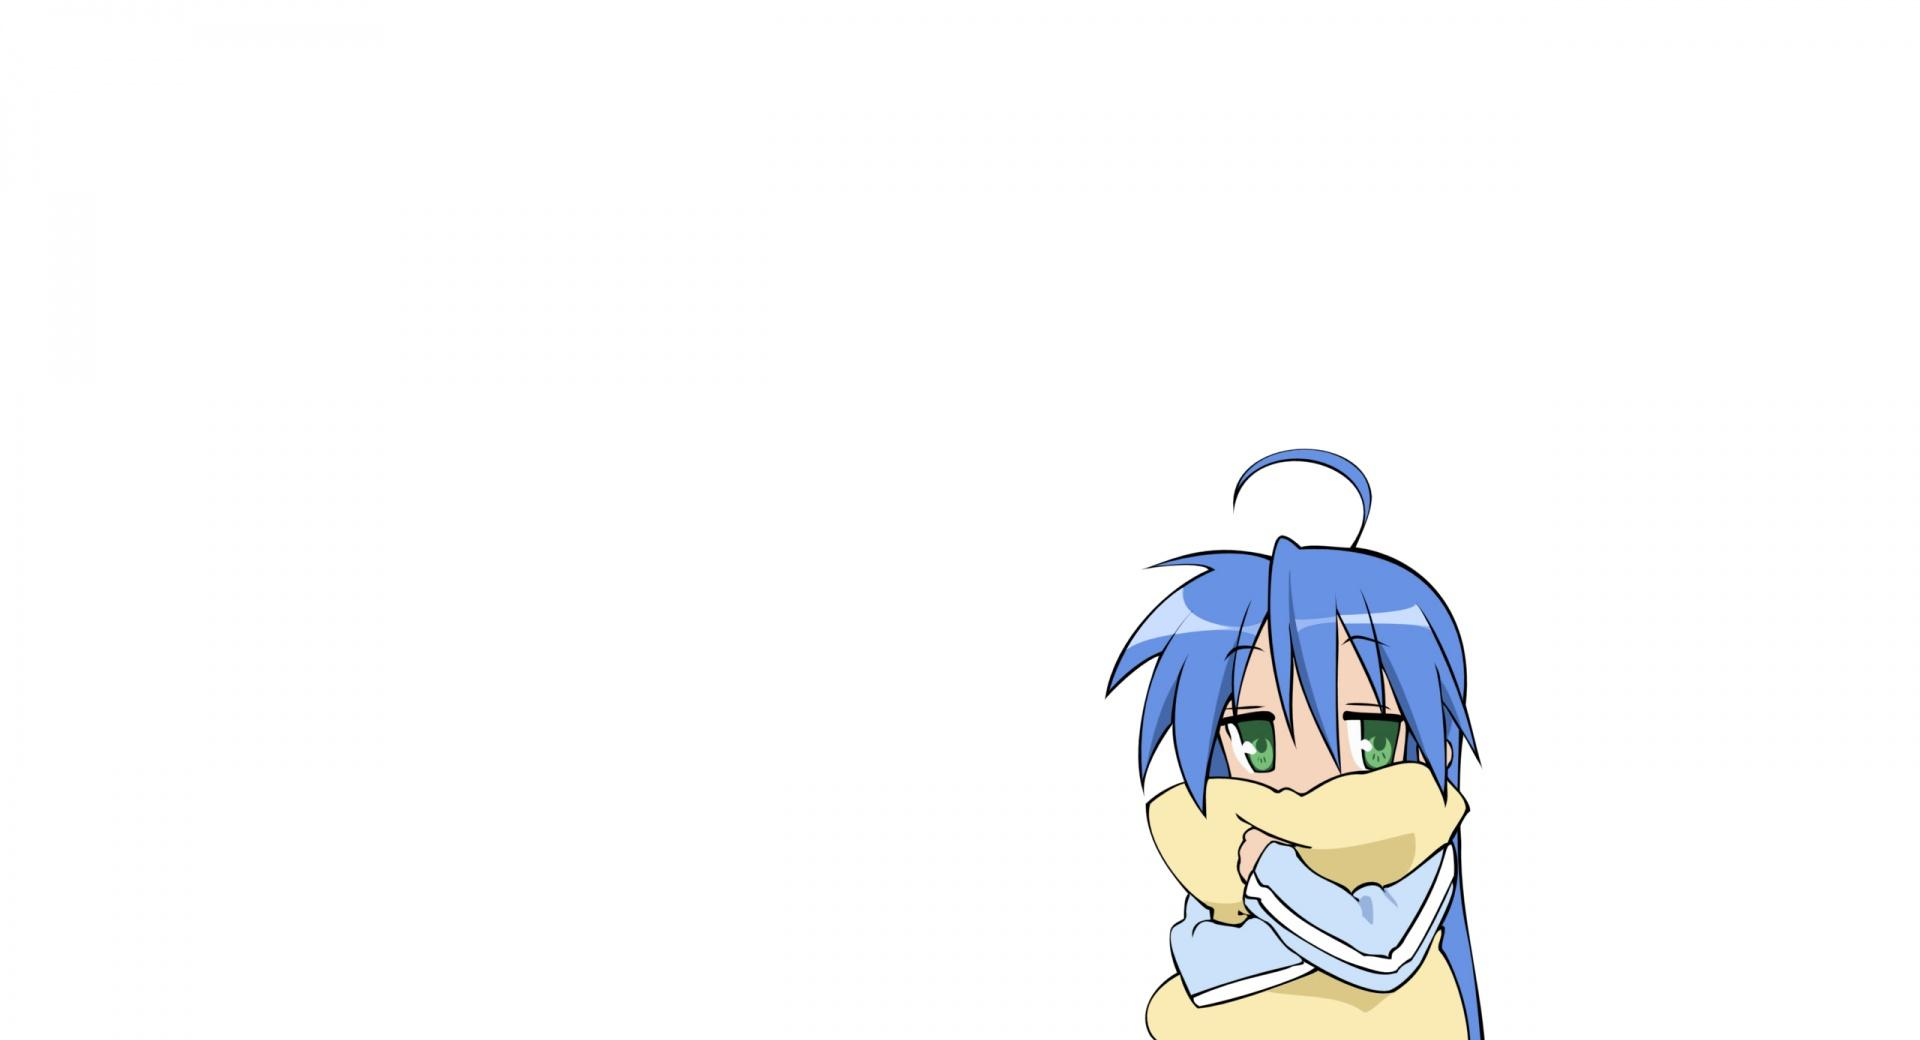 Lucky Star Anime wallpapers HD quality